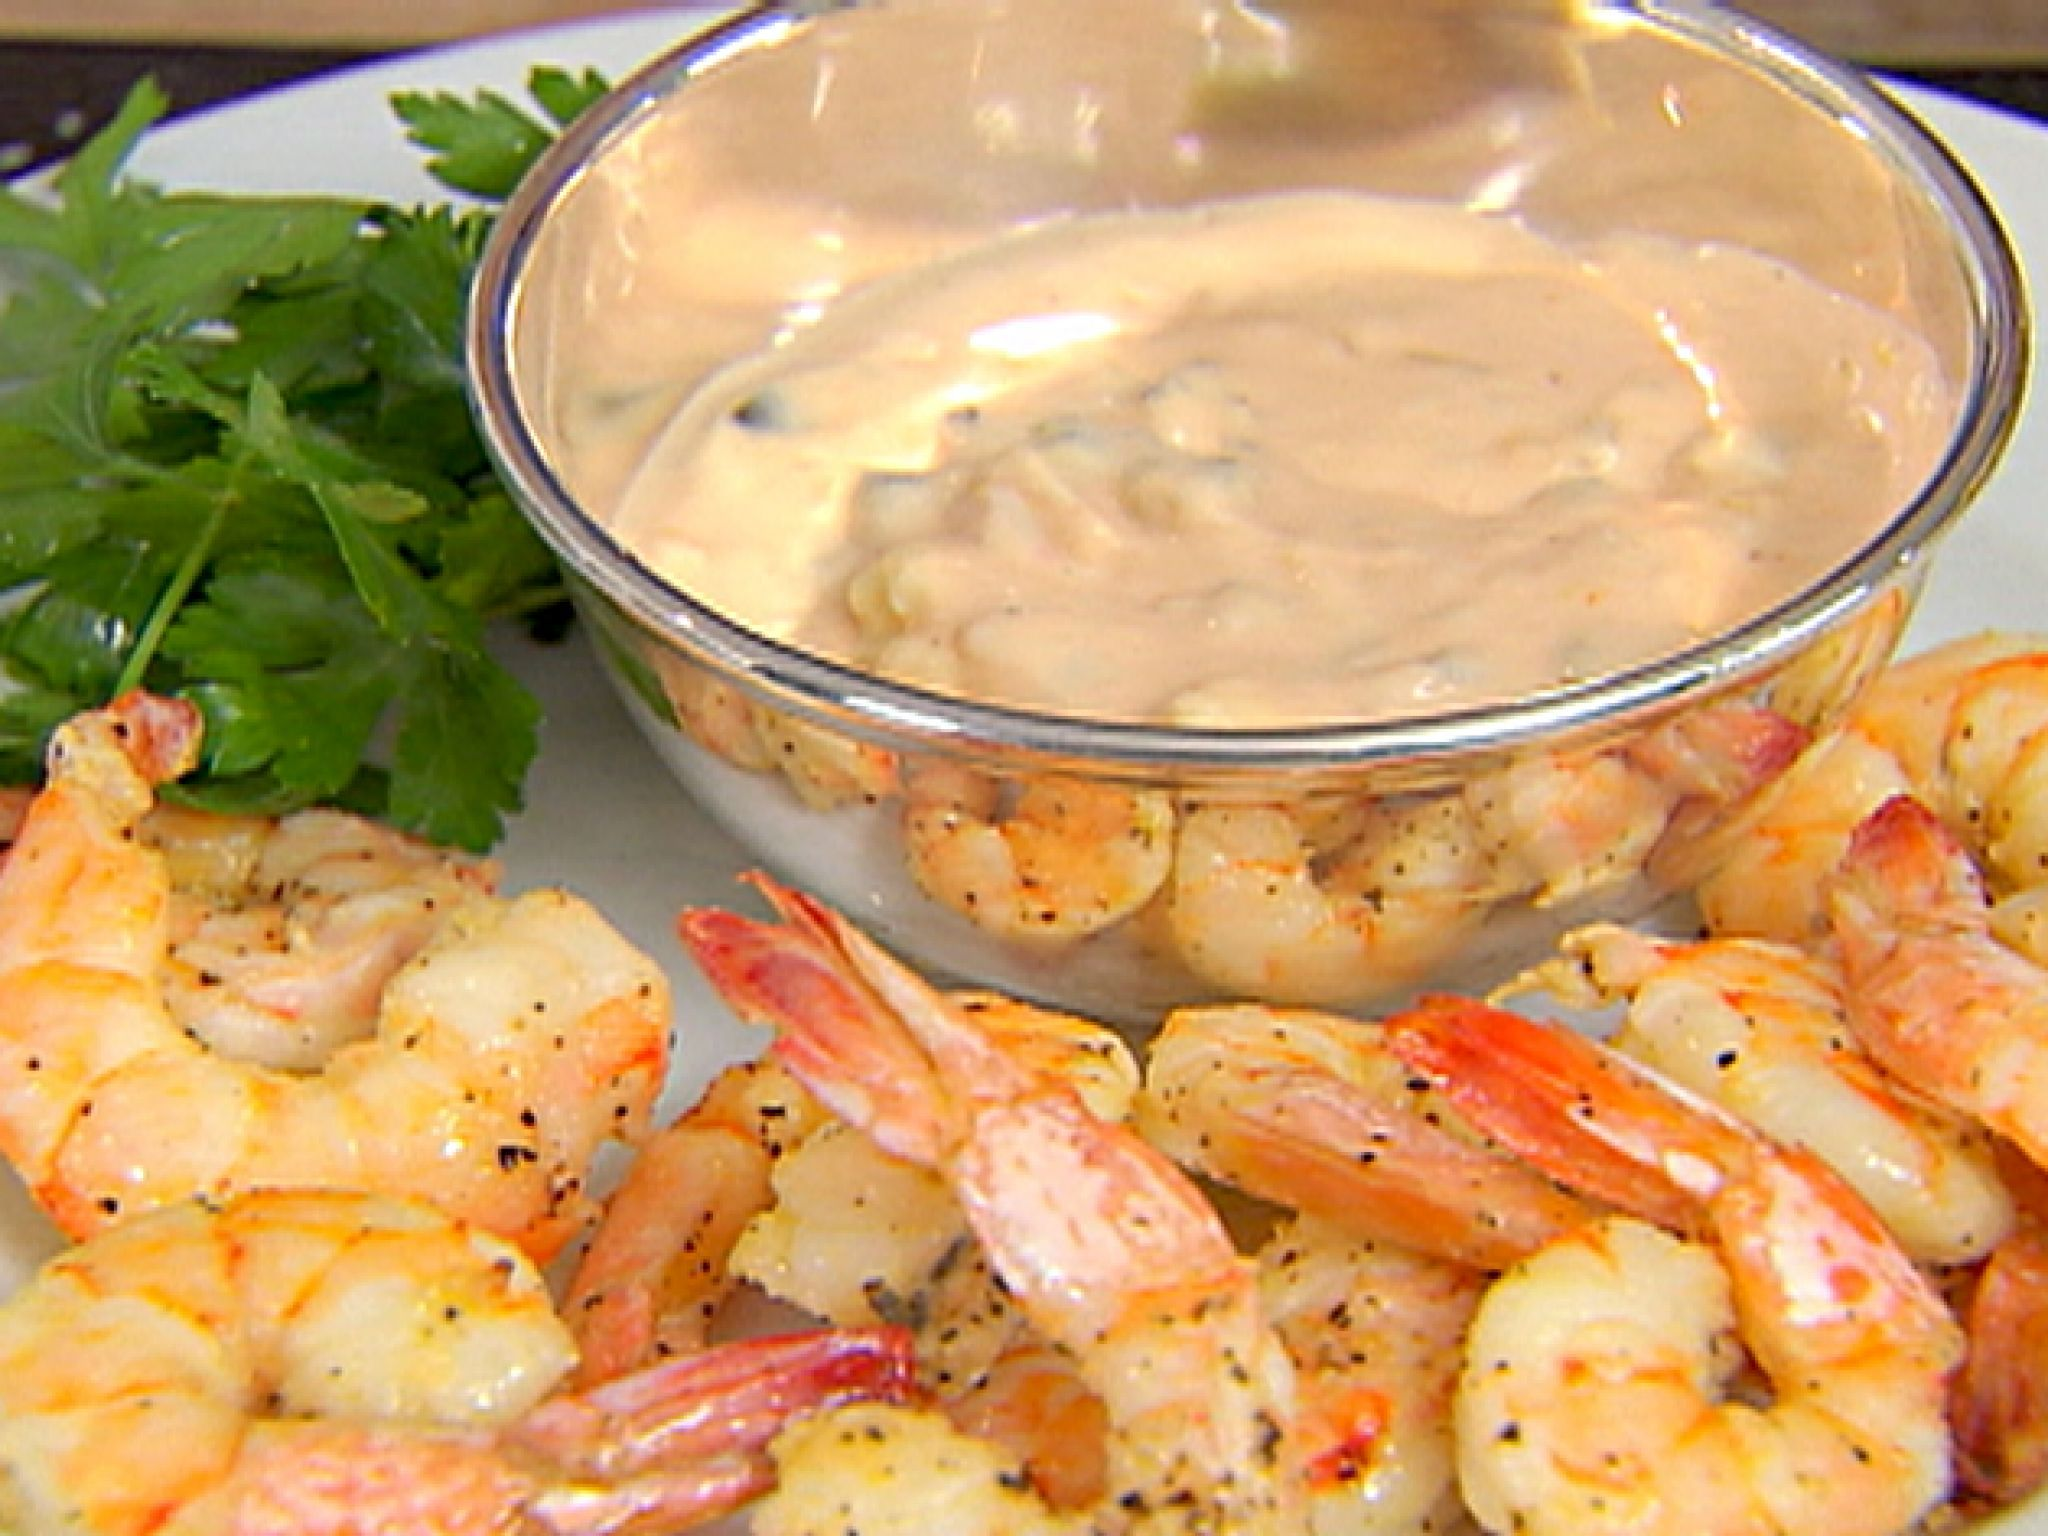 Roasted Shrimp With Thousand Island Dressing Recipe Food Network Recipes Roasted Shrimp Homemade Thousand Island Dressing